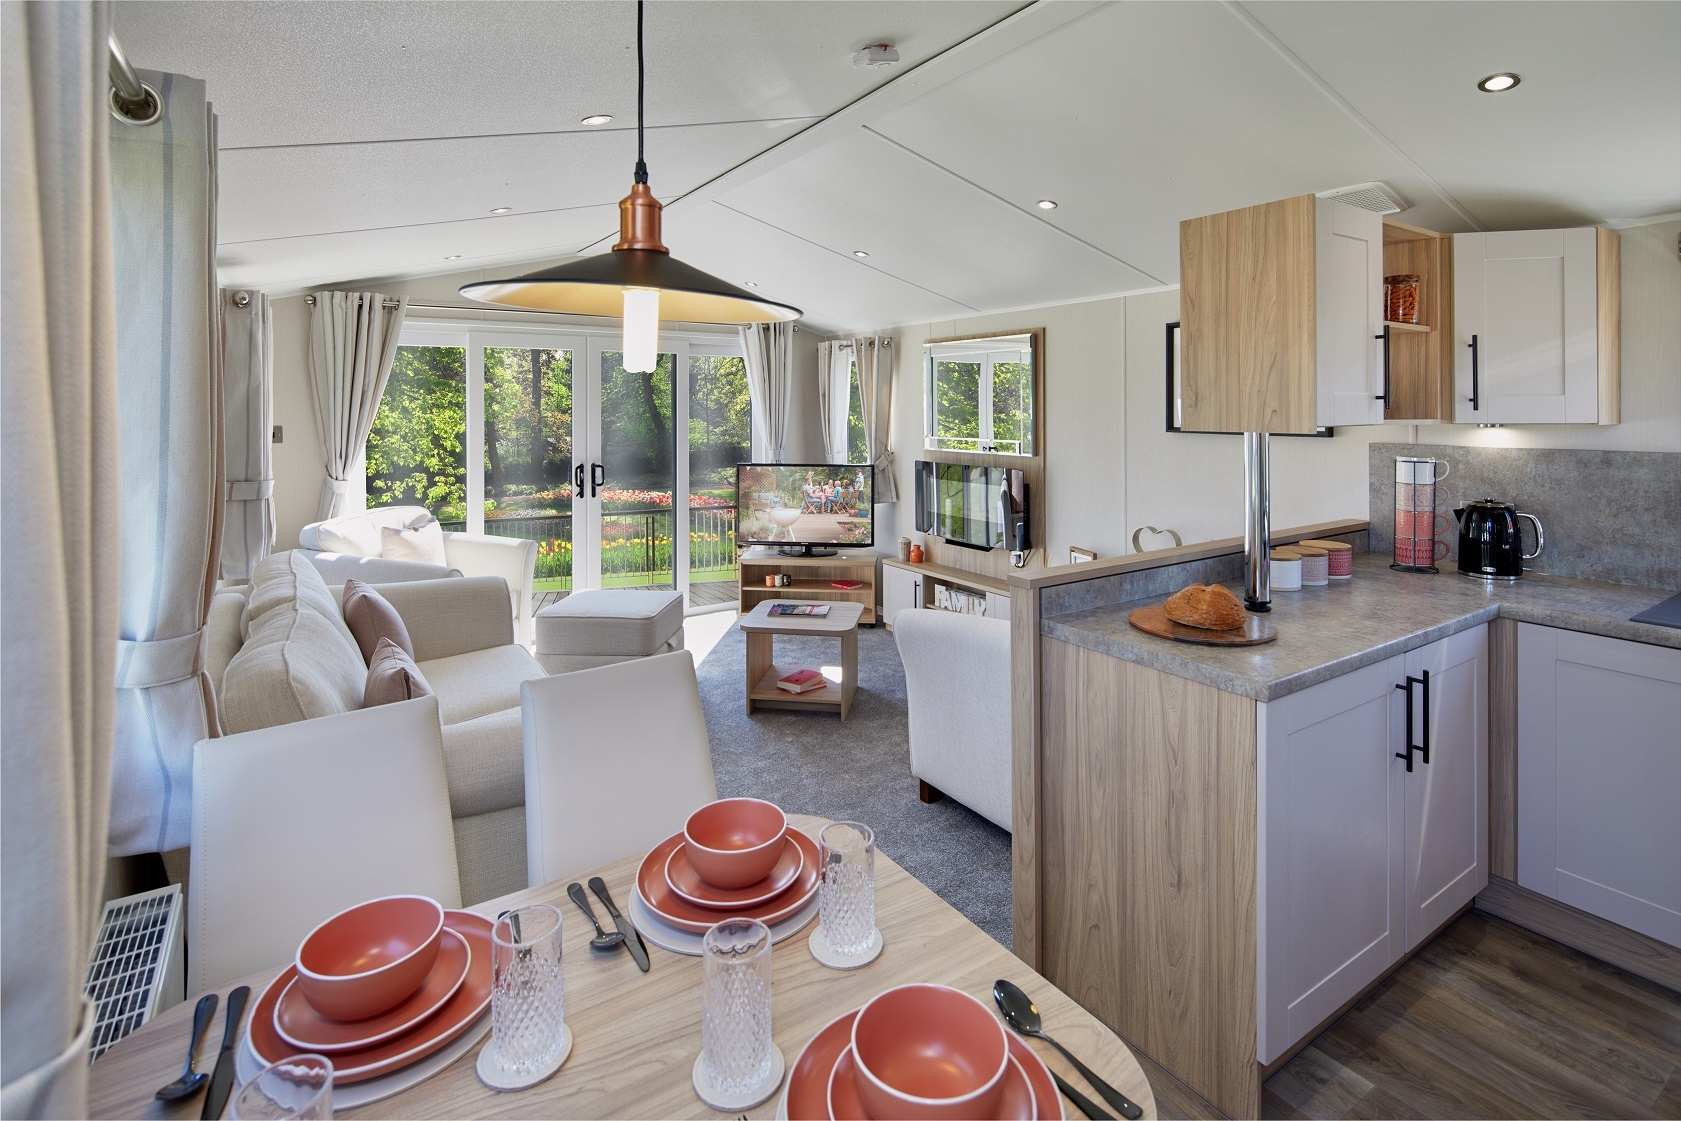 Willerby Manor: Static Caravans and Holiday Homes for Sale on Caravan Parks, Pickering, North Yorkshire Large Image 1